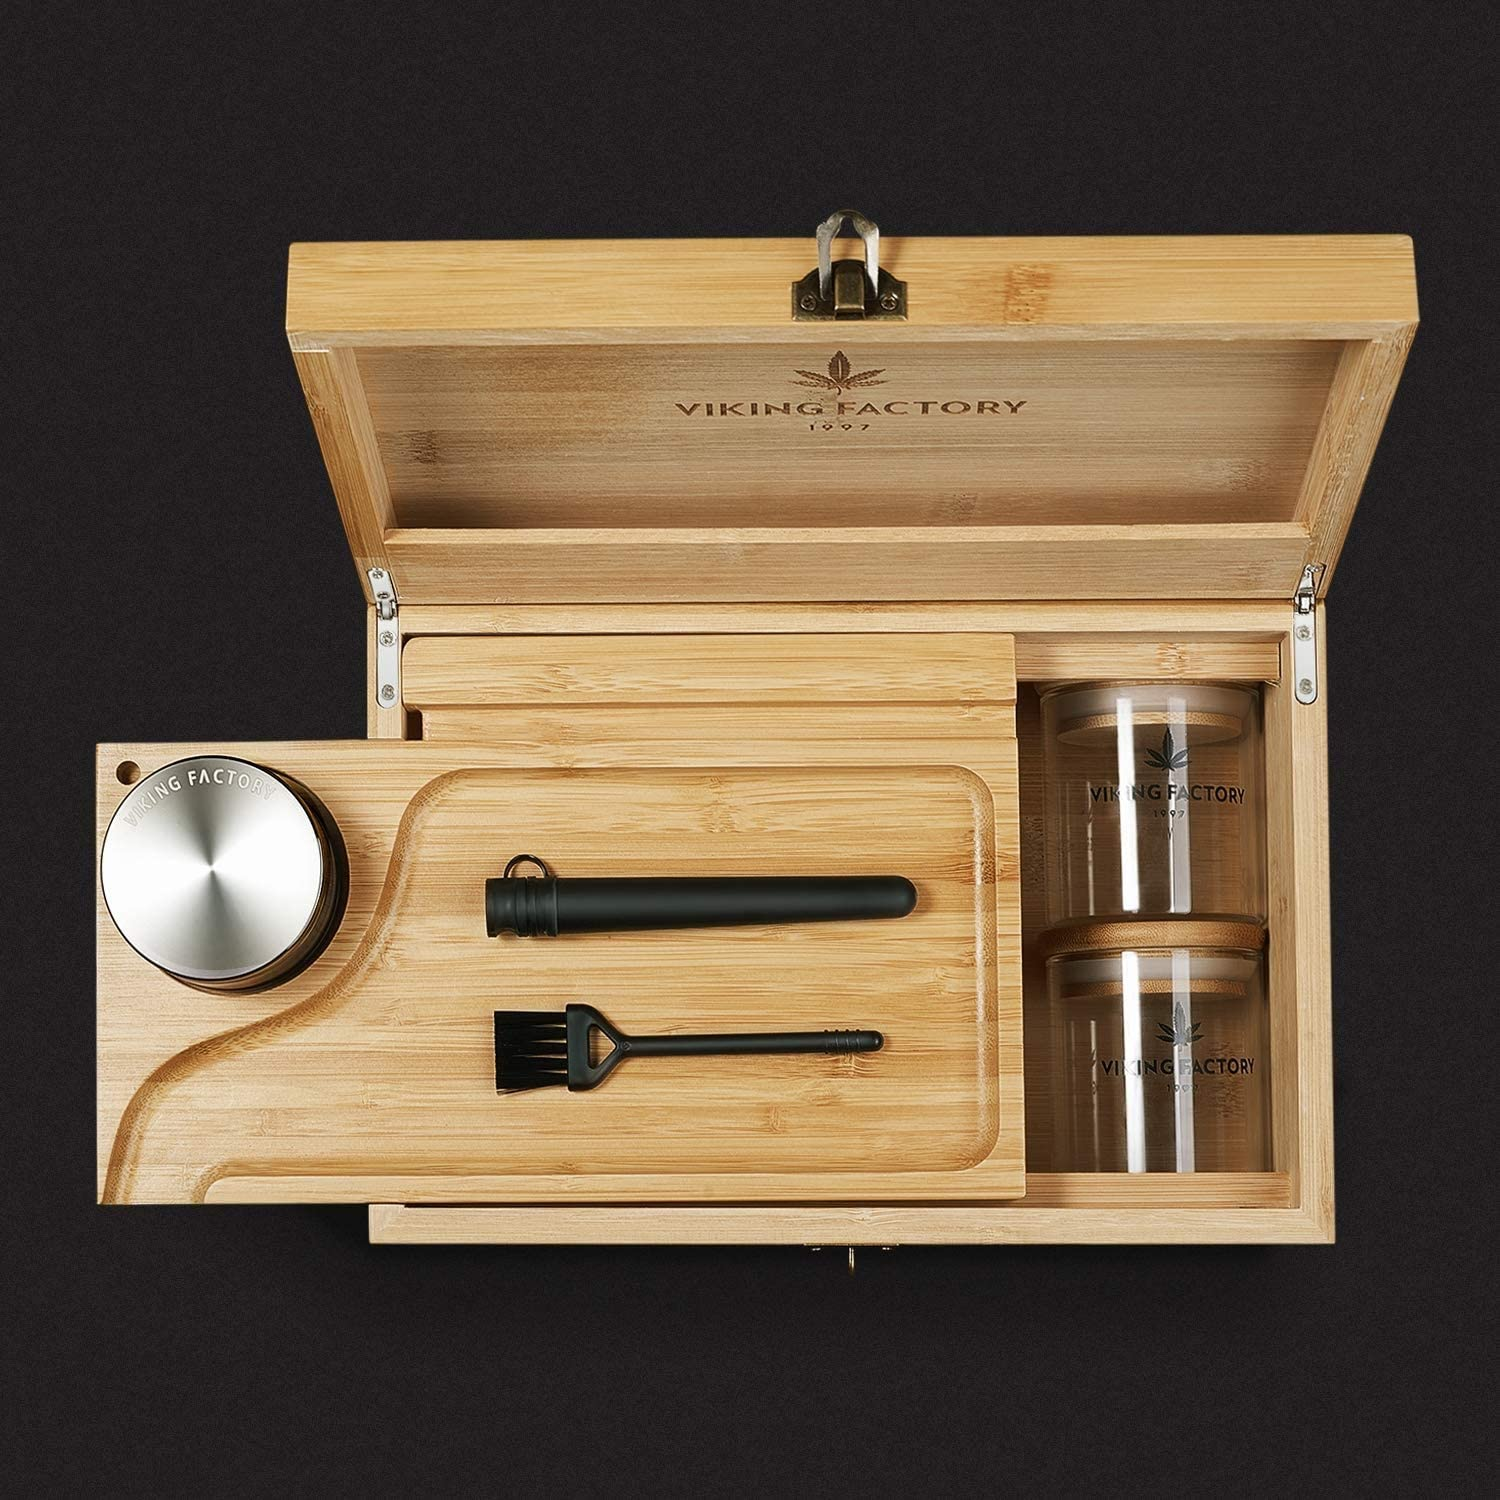 Can Be Opened and Moved. Brush and Other Tools The Tray is Dual-purpose Equipped with Glass Sealed Jar Large Stash Box with Tray Deodorizing Grinder Code Lock Made of Pure Bamboo